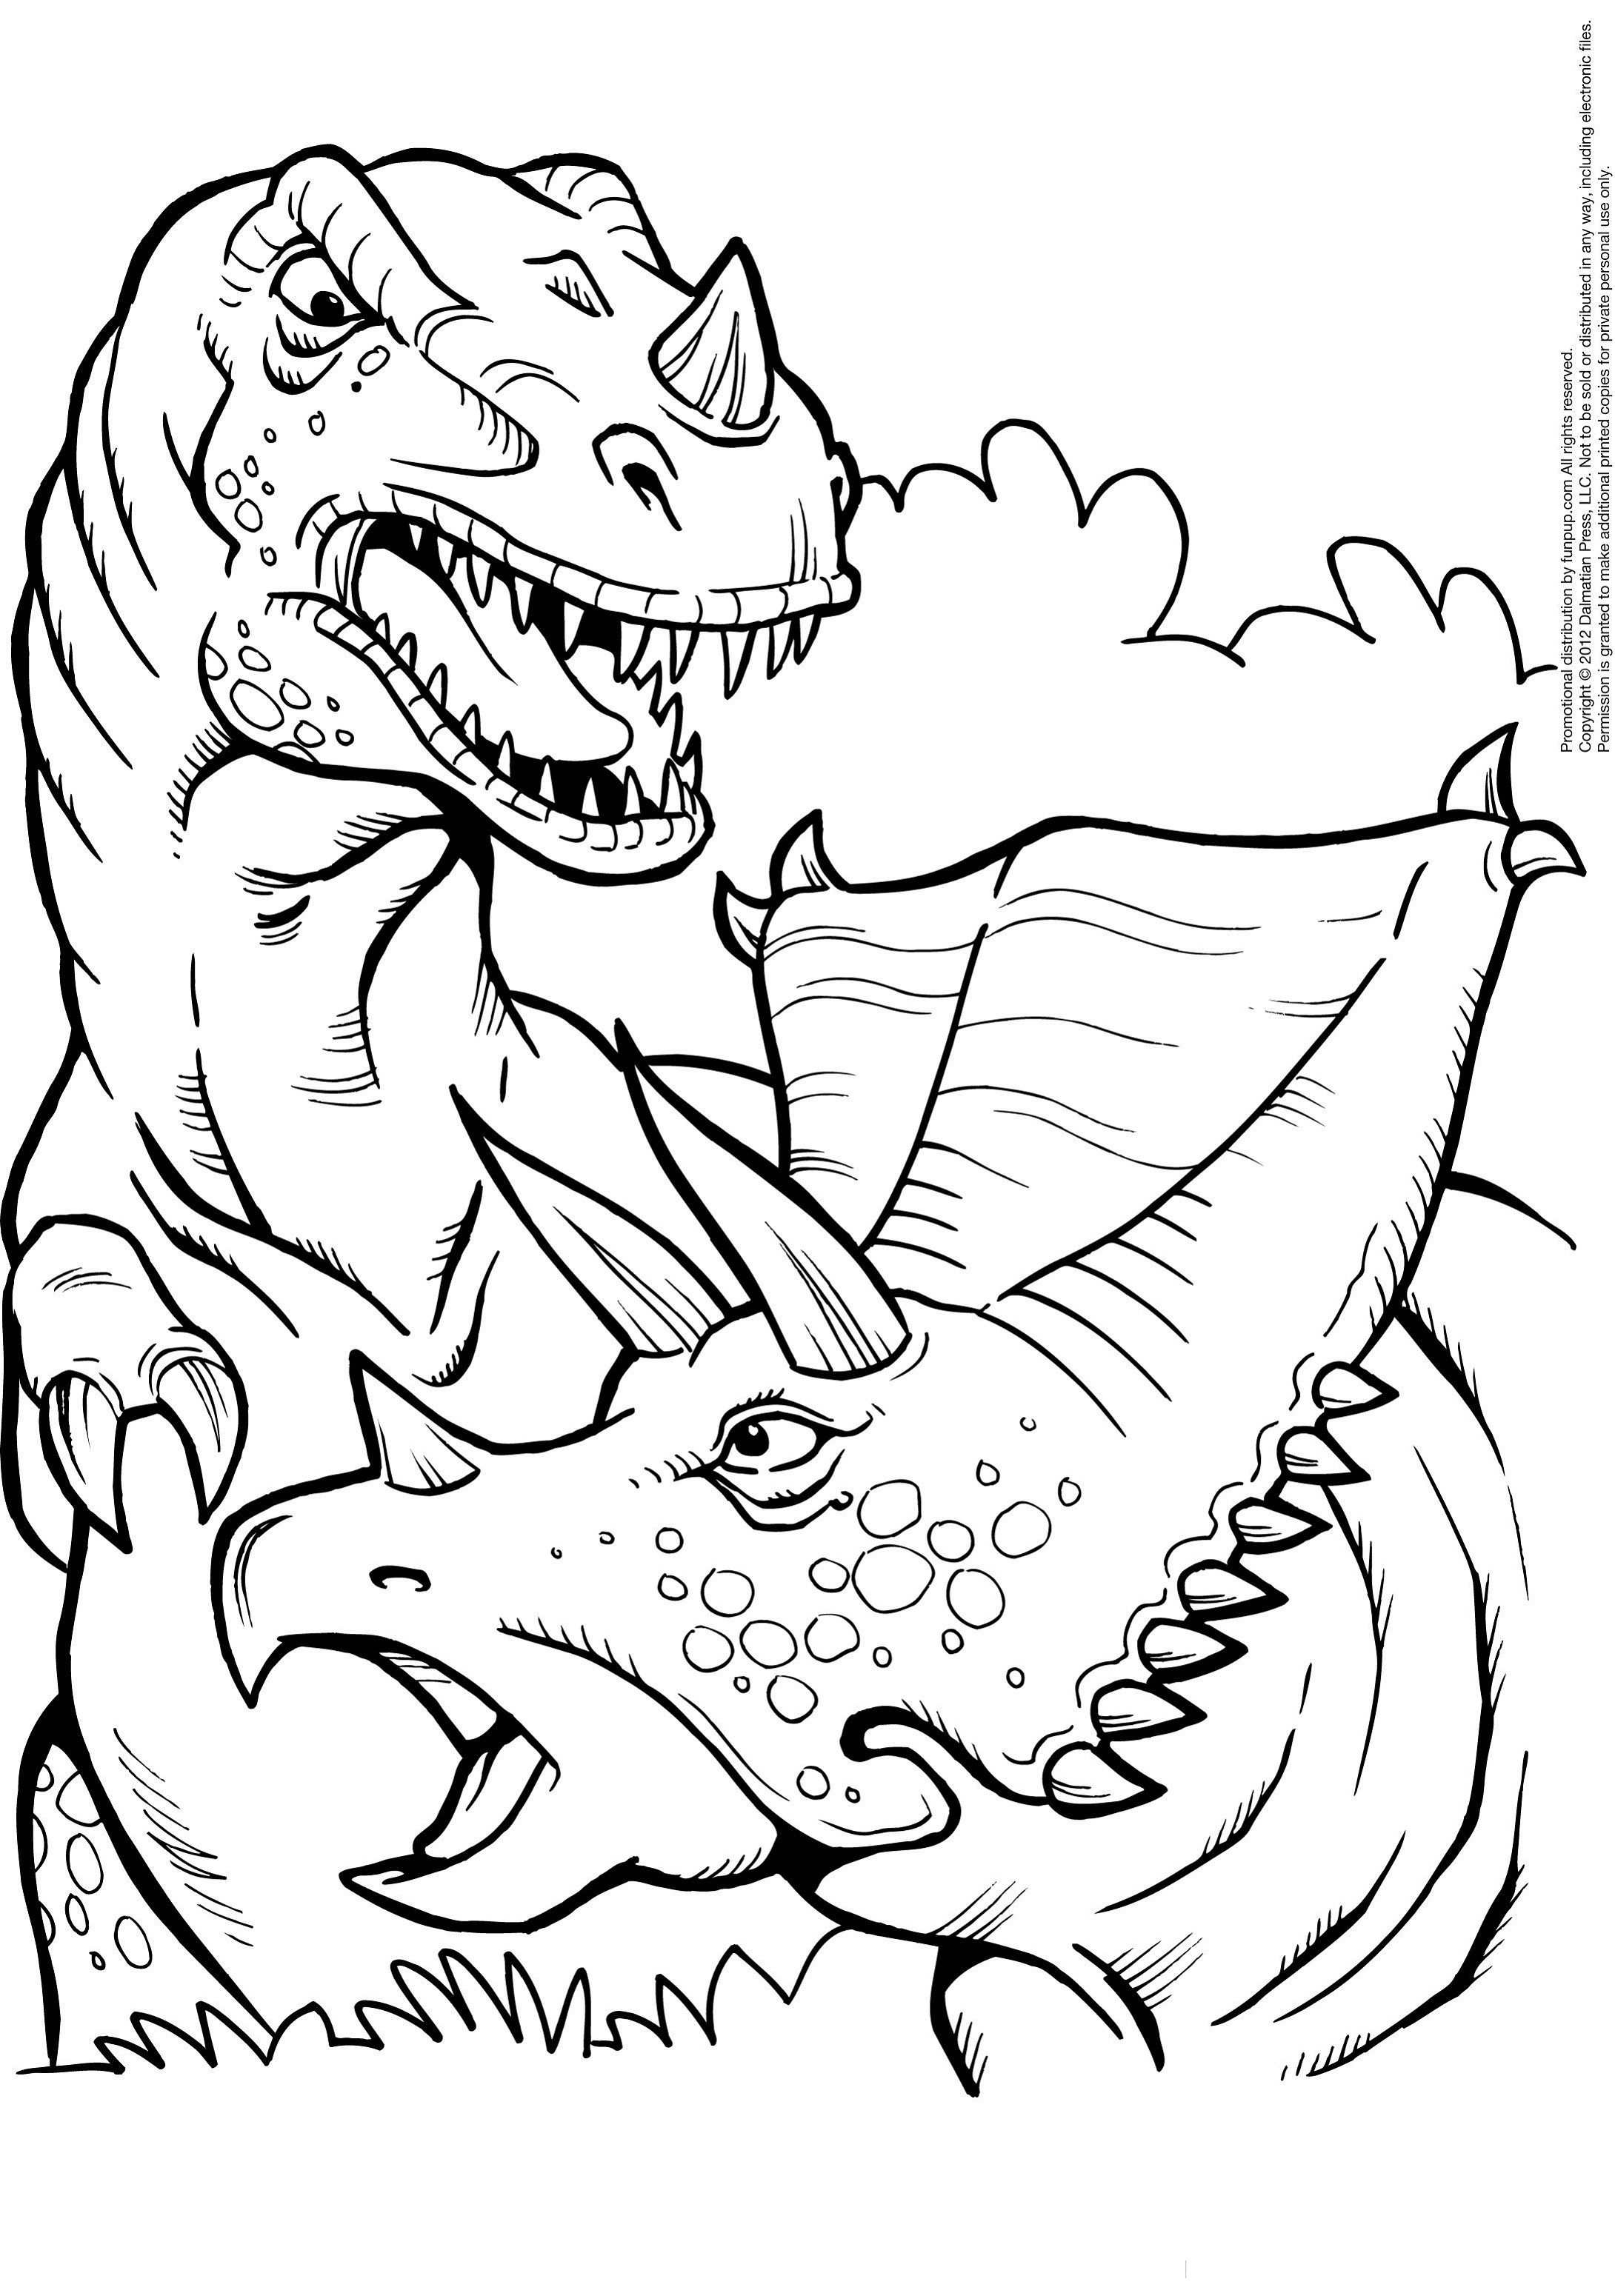 Hybrid Dinosaur Indominus Rex Coloring Picture Dinosaur Coloring Pages Minion Coloring Pages Horse Coloring Pages